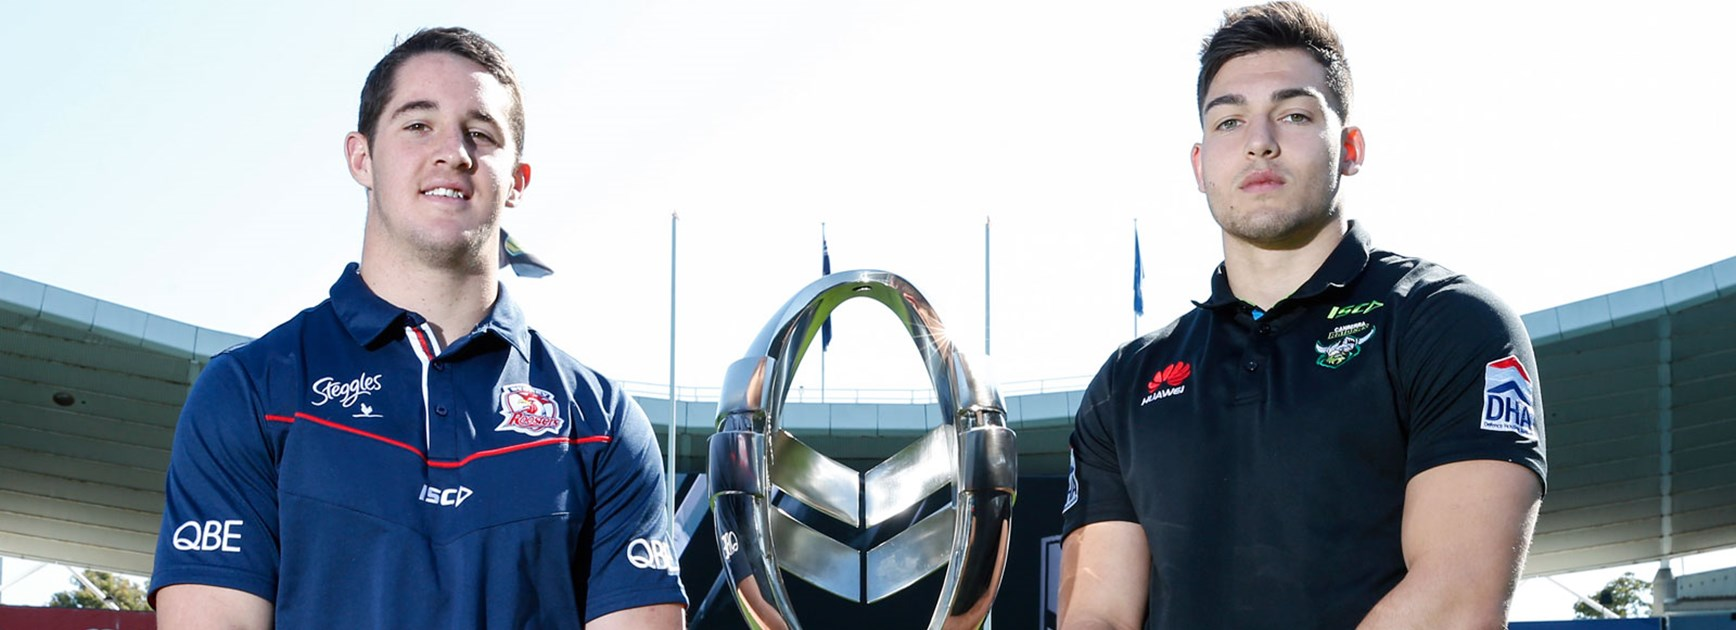 The Roosters and Raiders meet in the first week of the 2016 Holden Cup Finals Series.